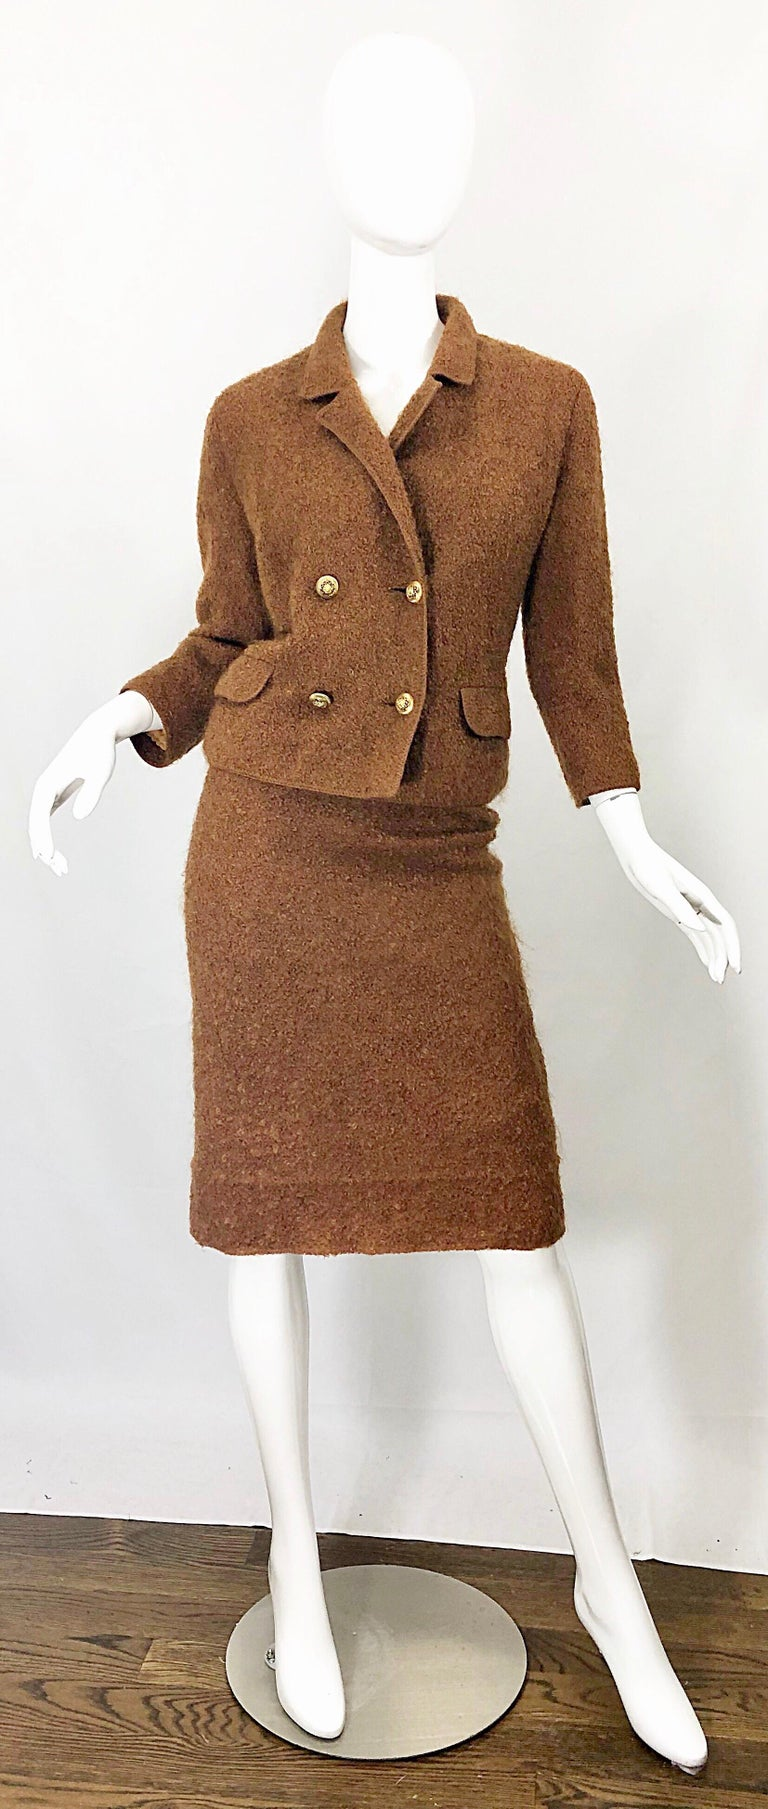 Incredibly chic vintage early 1960s I. MAGNIN tobacco rust brown mohair skirt suit! Features a soft wool mohair that is fully lined in a nude silk chiffon. Double breasted fitted blazer with a high waisted pencil skirt. Jacket features four gold